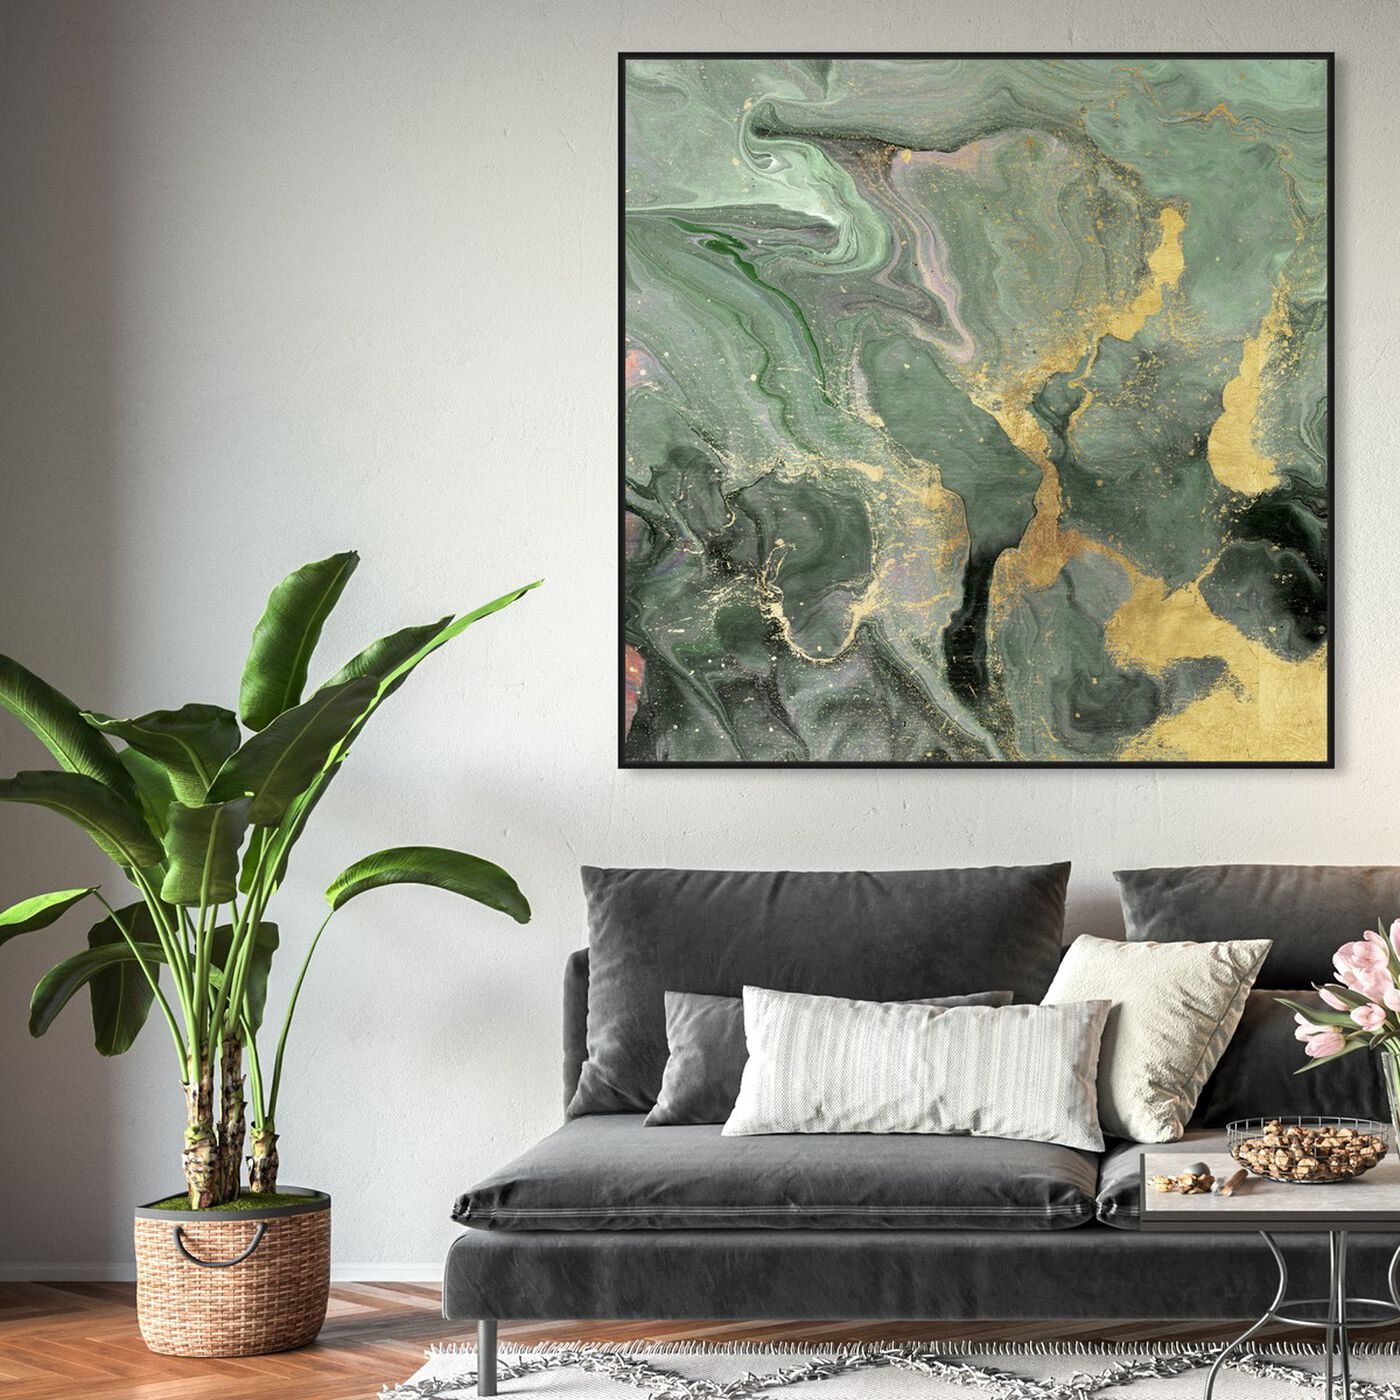 Hanging view of Jade Cosmos featuring abstract and crystals art.